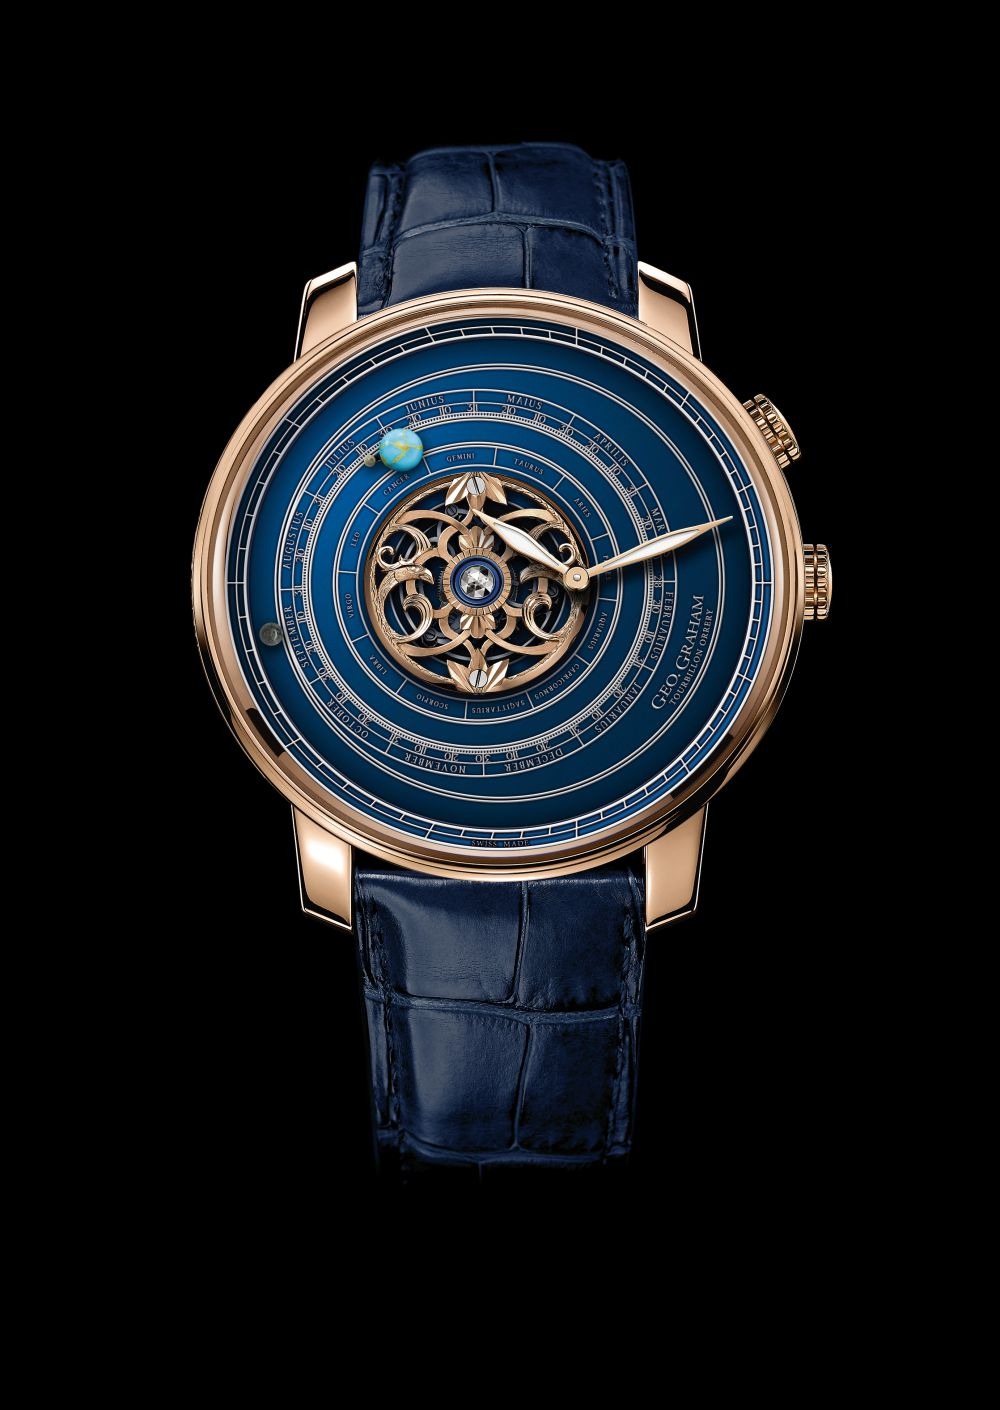 Geo-Graham-Orrery-Tourbillon-Baselworld-2017-2.jpg